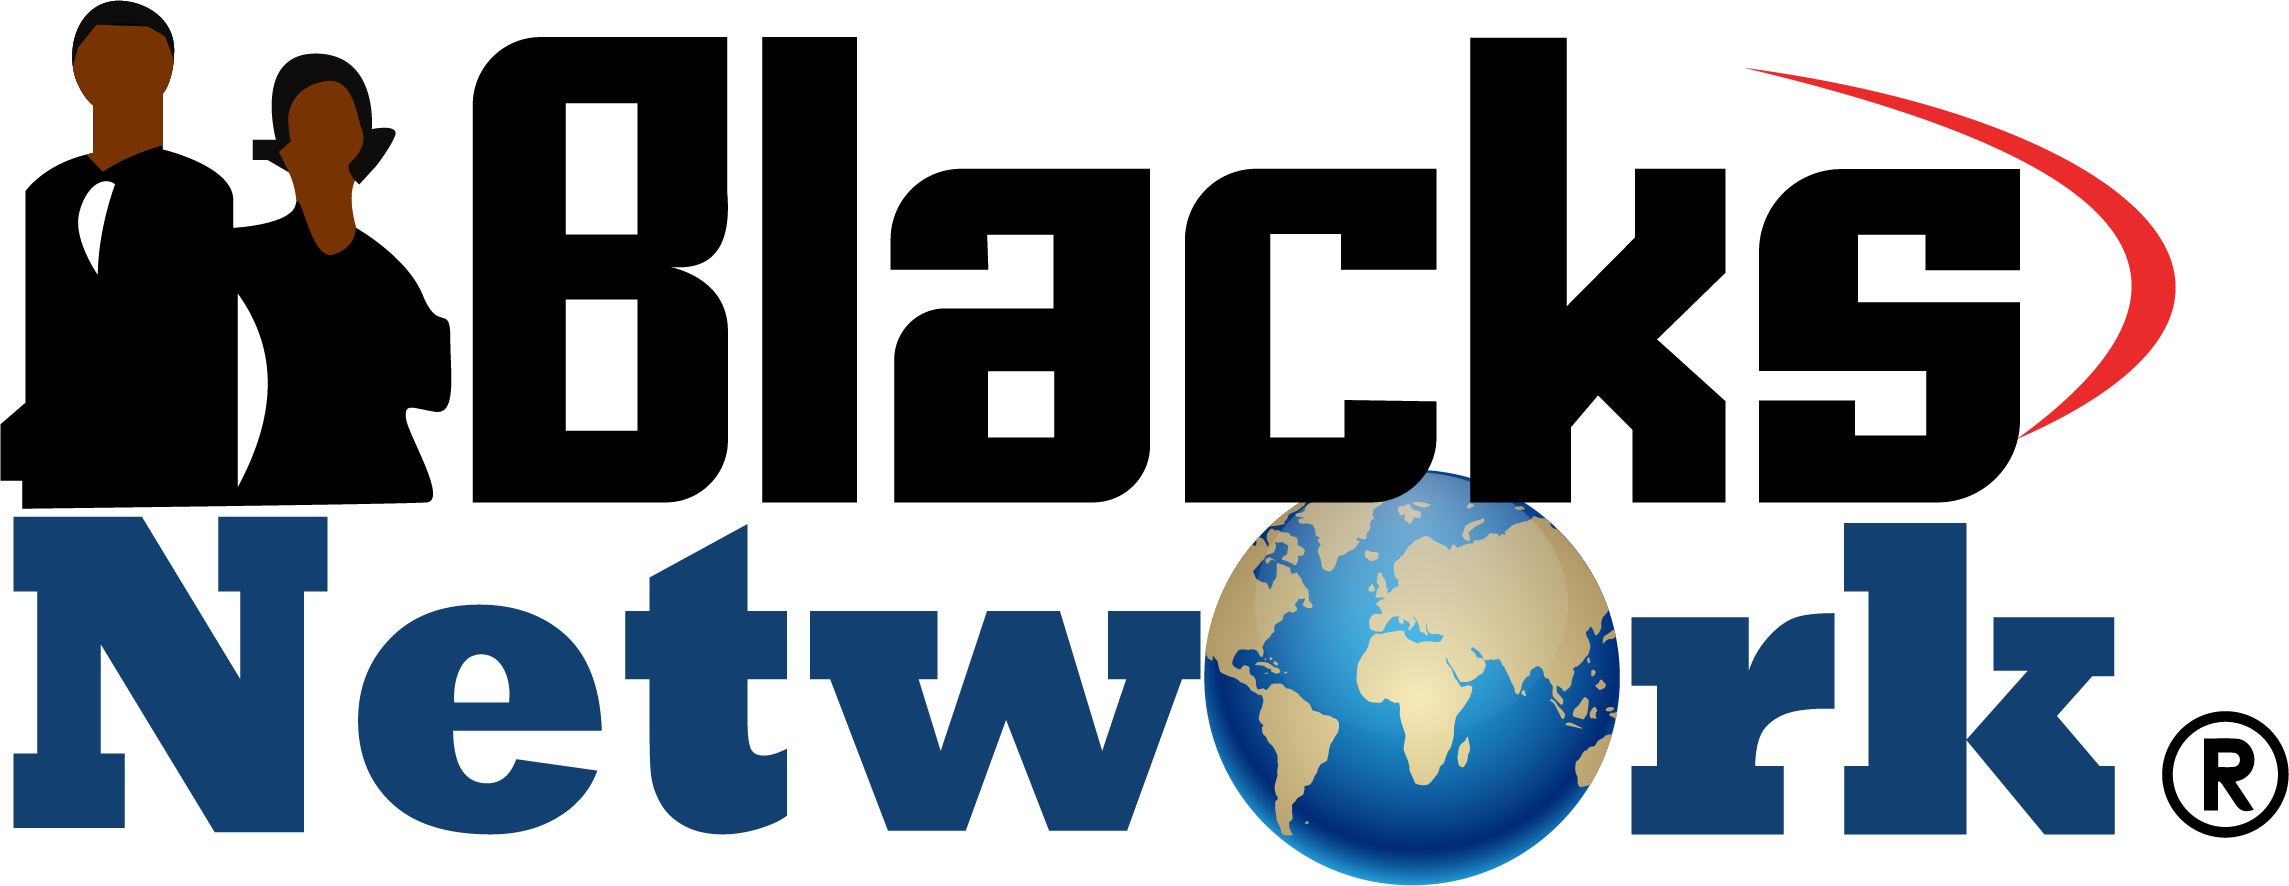 Blacks Network TV - Pioneering African American news, event, and entertainment around the world.